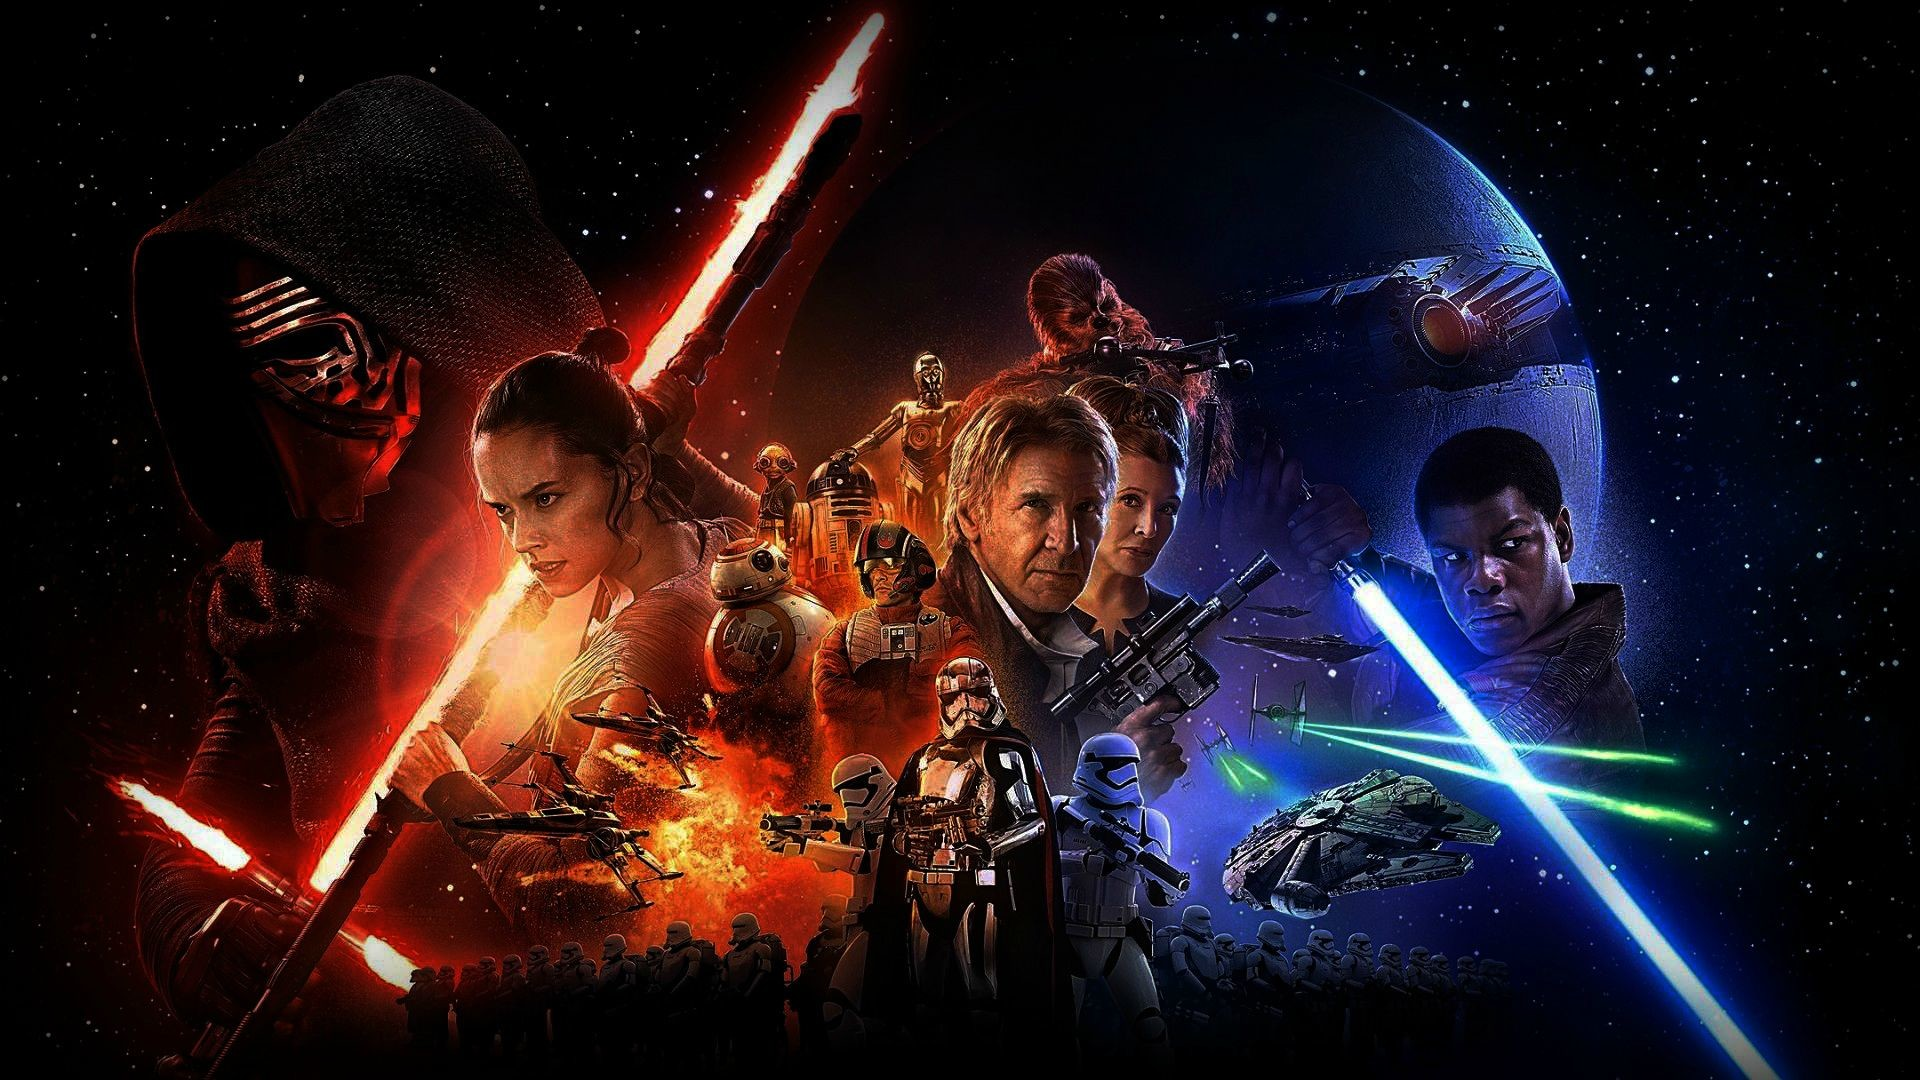 Image result for the force awakens wallpaper